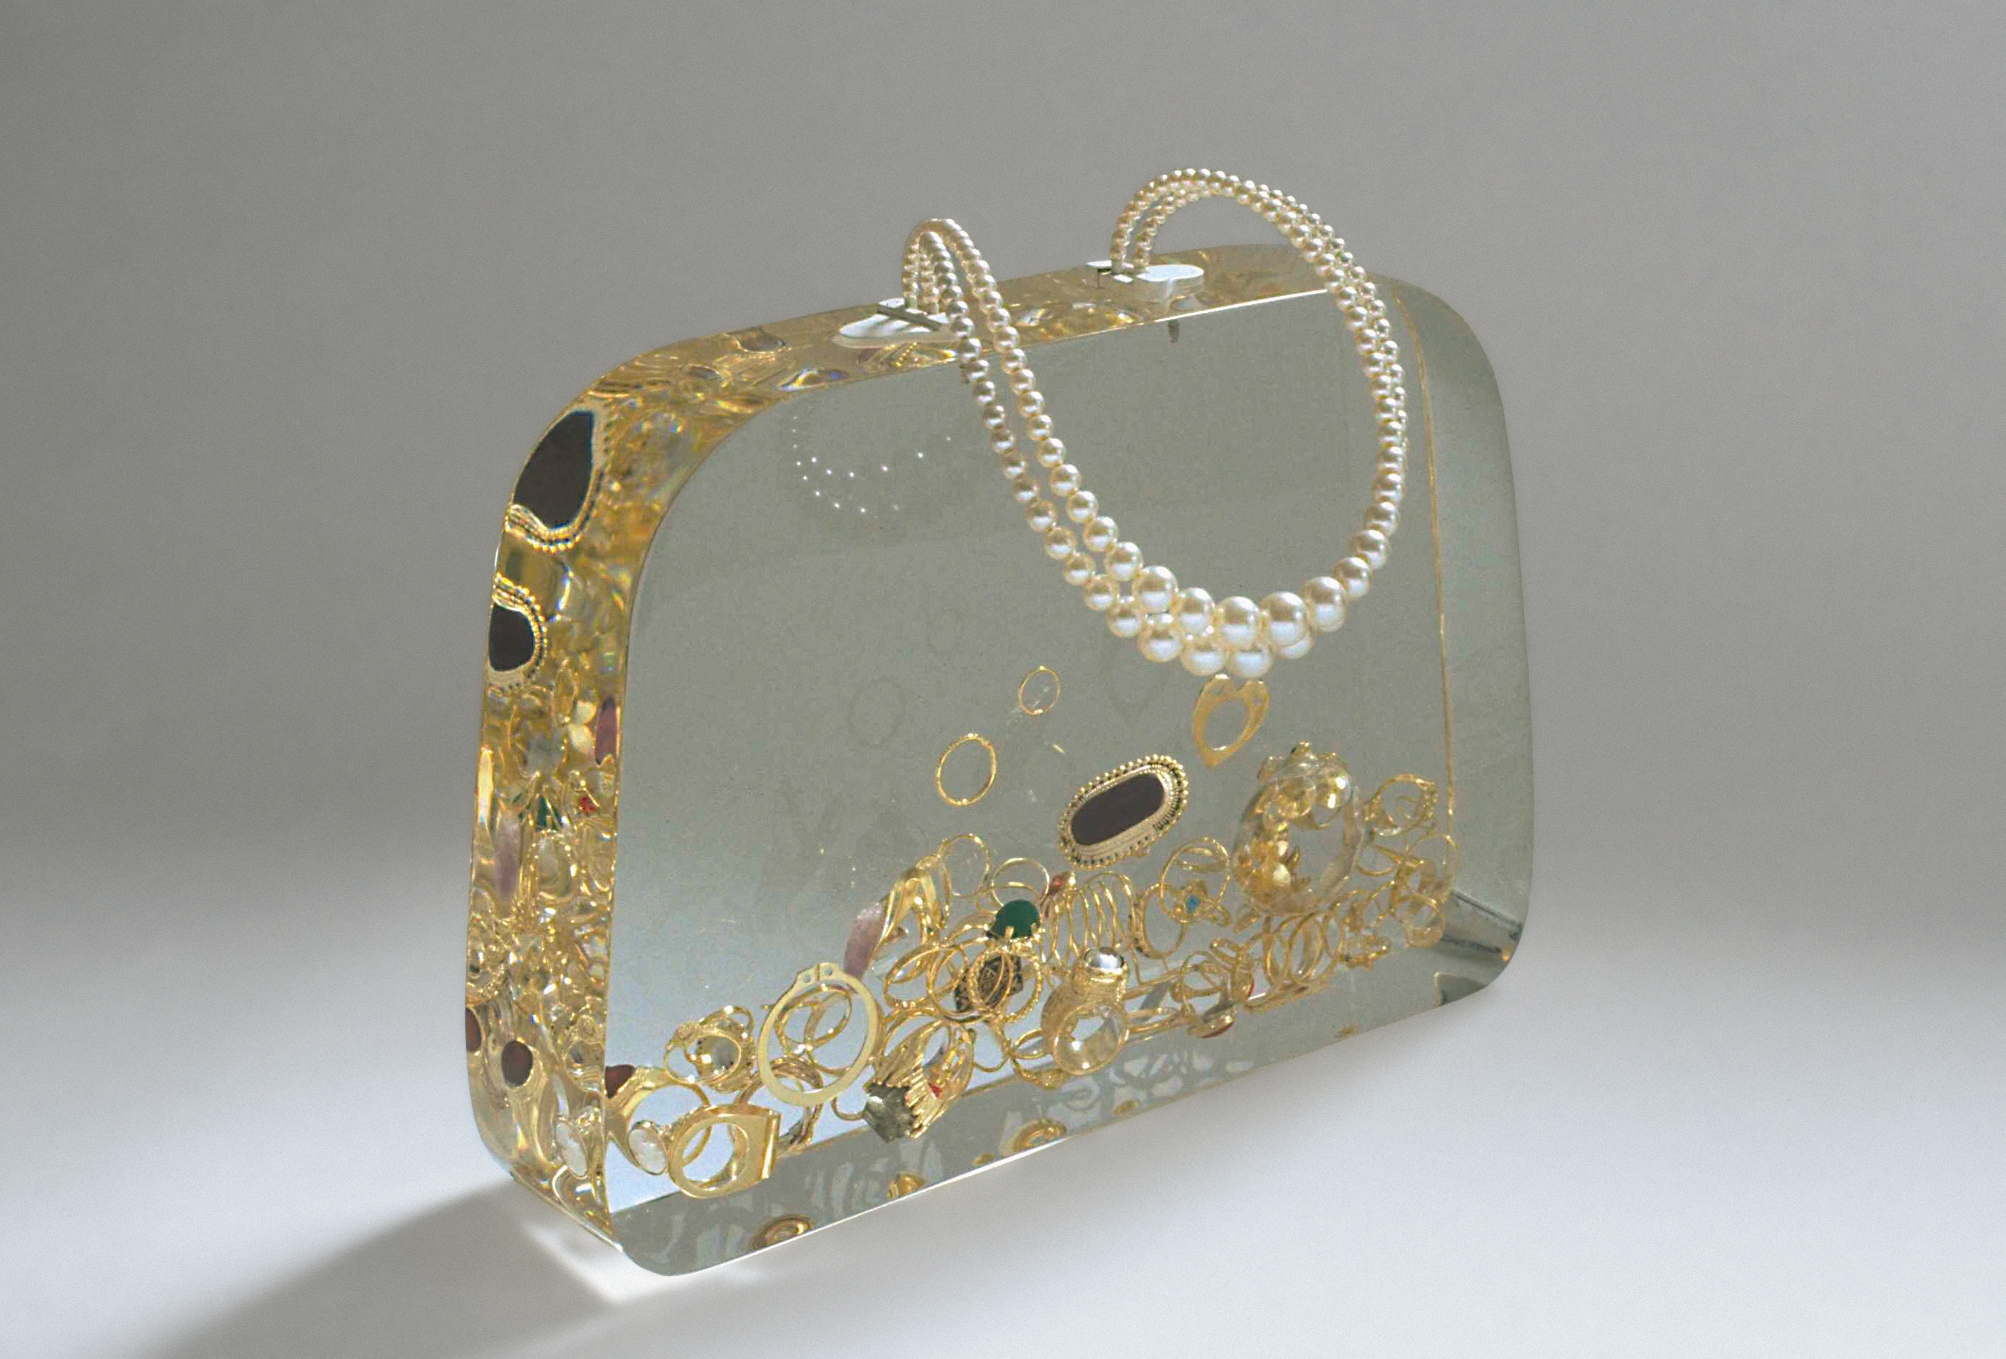 Ted Noten, Ageeth's Dowry bridal bag, 1999. Foto Atelier Ted Noten, parels, goud, stenen, acryl